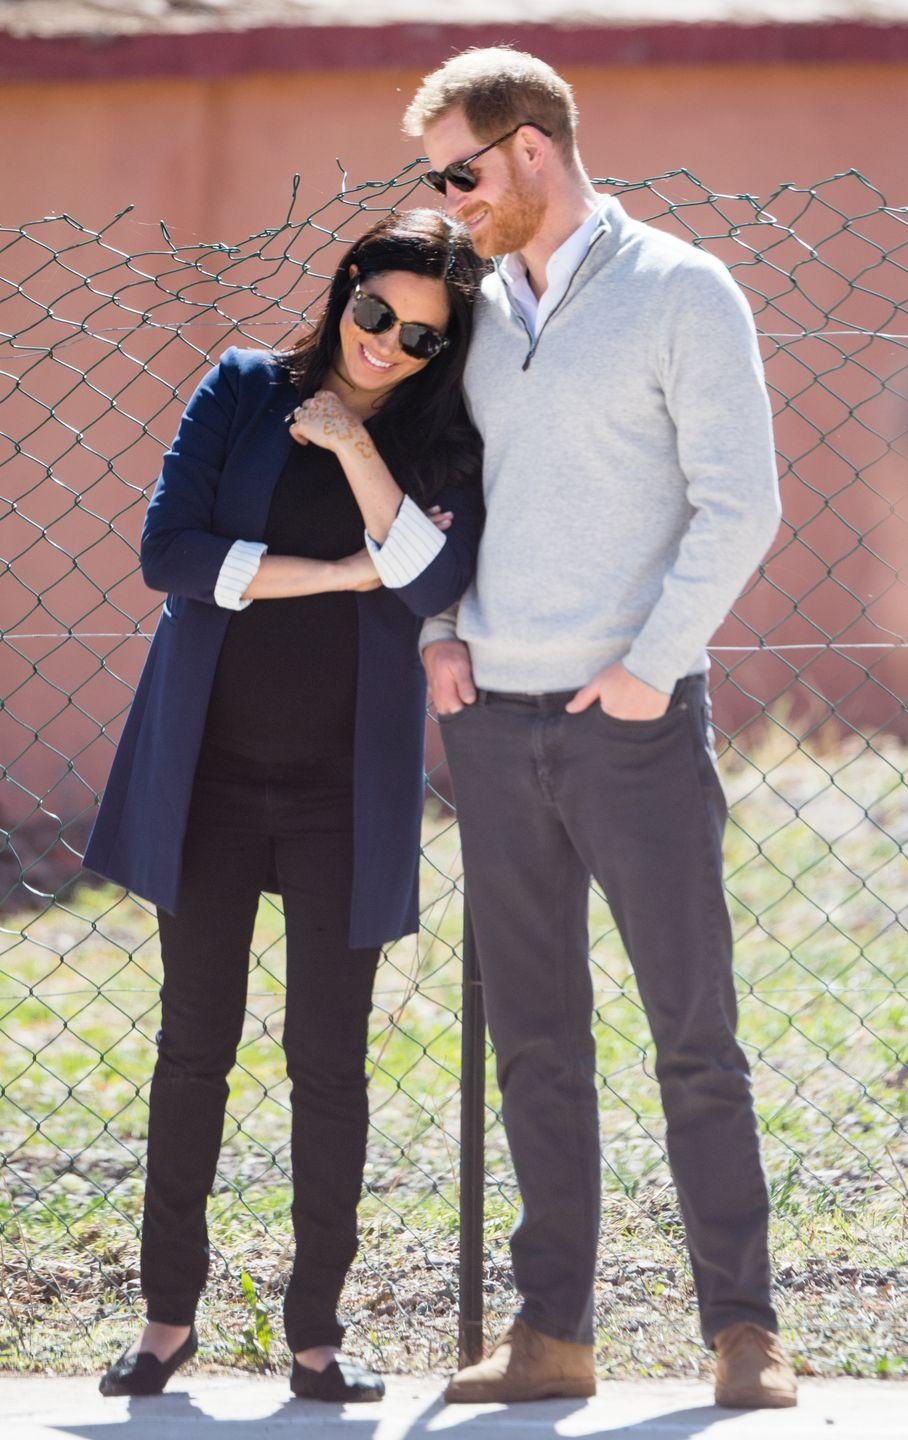 "<p>Meghan playfully leans on her husband while they visit a local secondary school in Asni, Morocco <a href=""https://www.townandcountrymag.com/society/tradition/g26364847/prince-harry-and-meghan-markle-morocco-2019-visit-photos/"" rel=""nofollow noopener"" target=""_blank"" data-ylk=""slk:during their official royal visit"" class=""link rapid-noclick-resp"">during their official royal visit</a>. </p>"